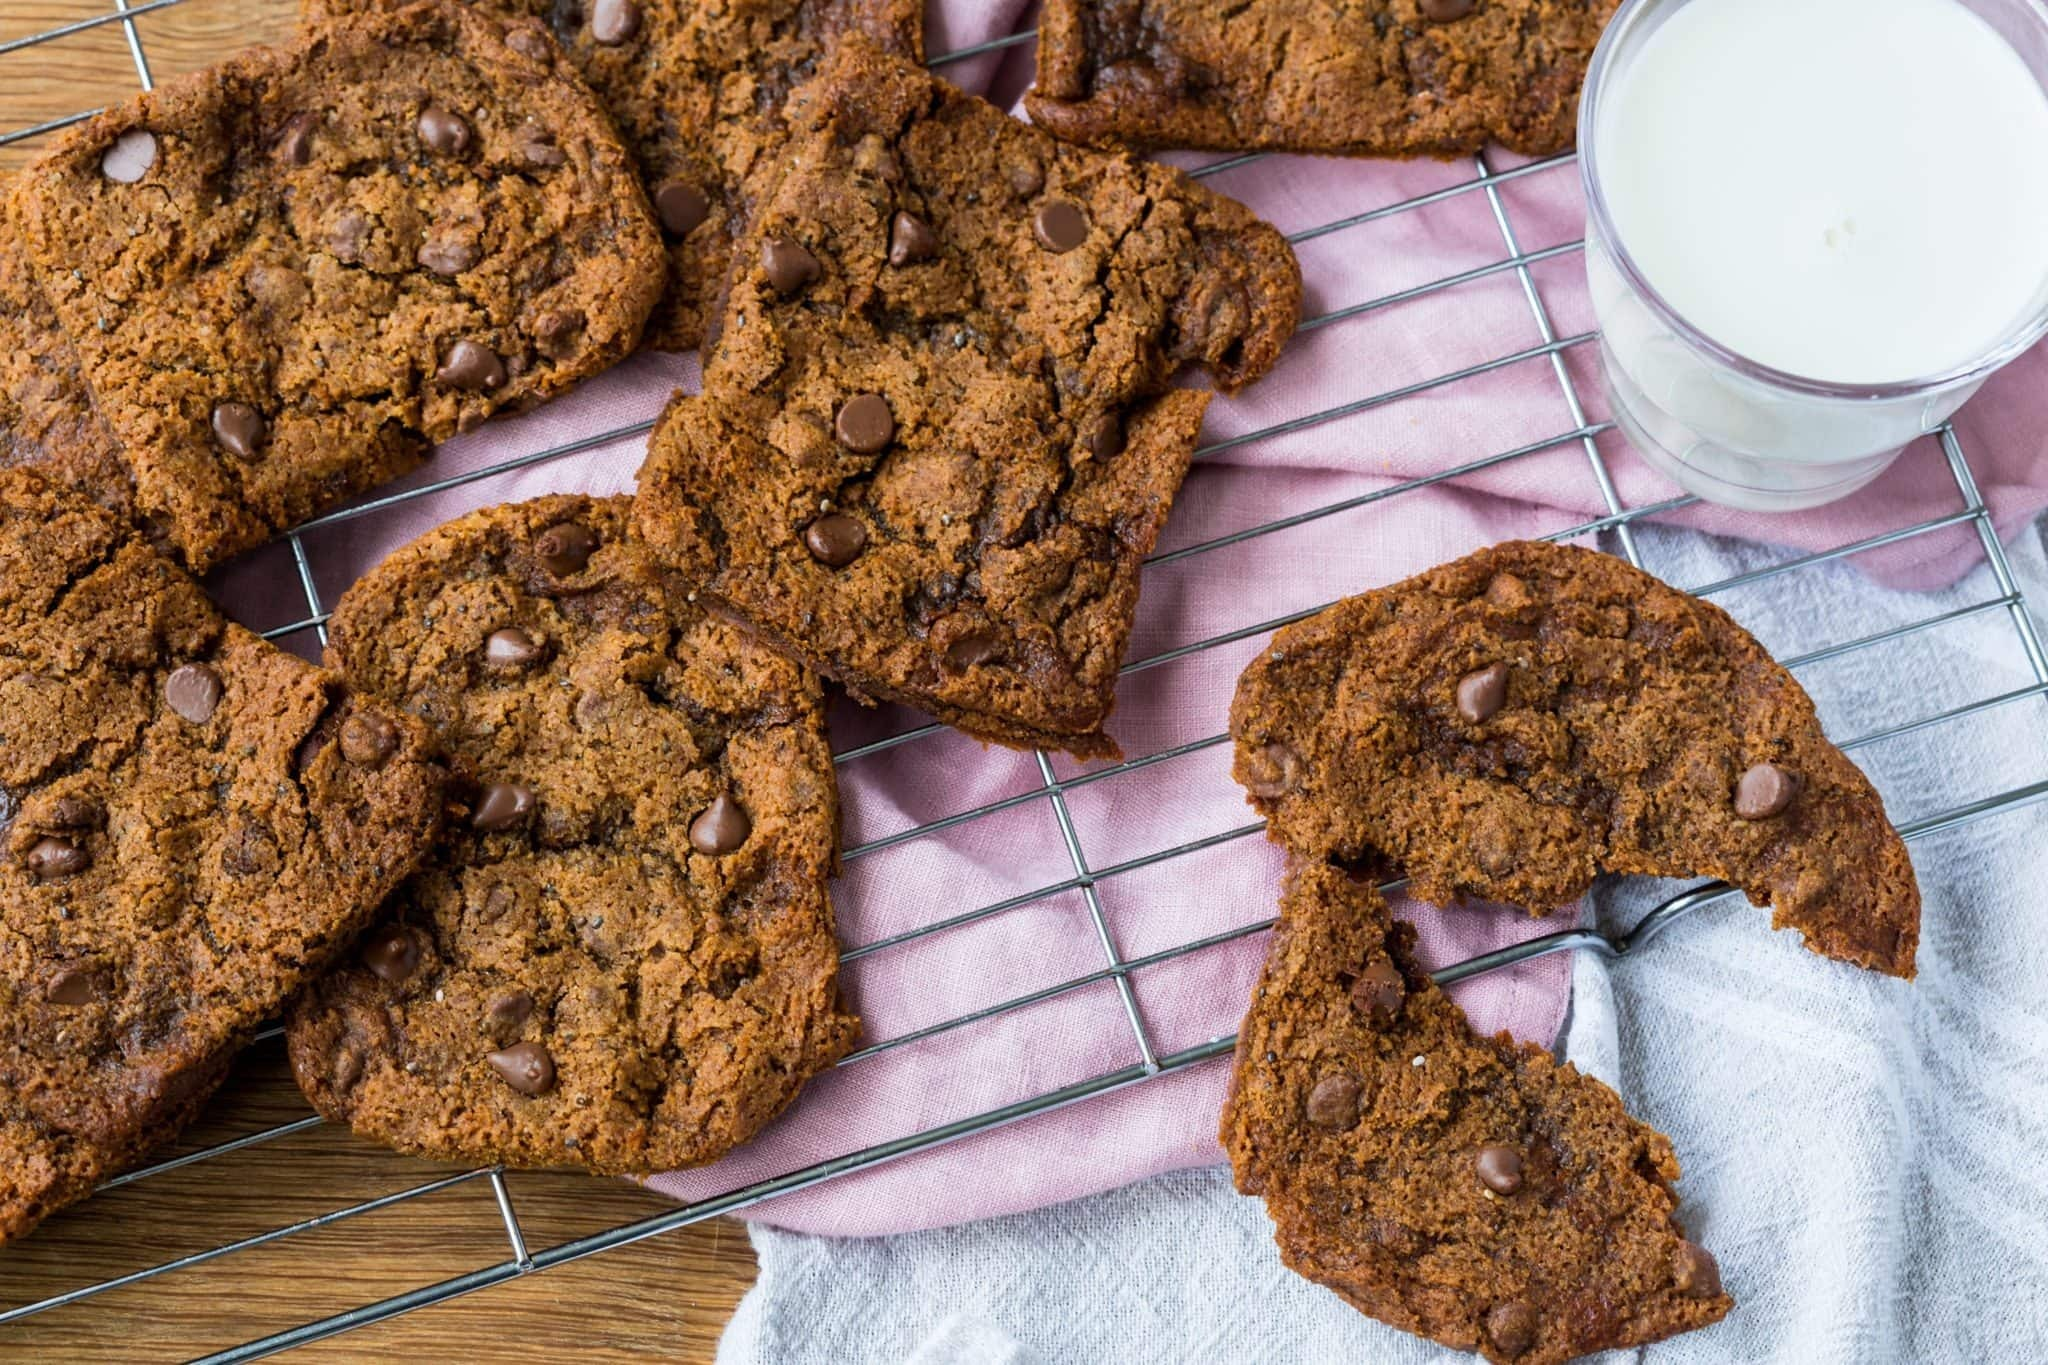 Thermomix Gluten Free Cookies